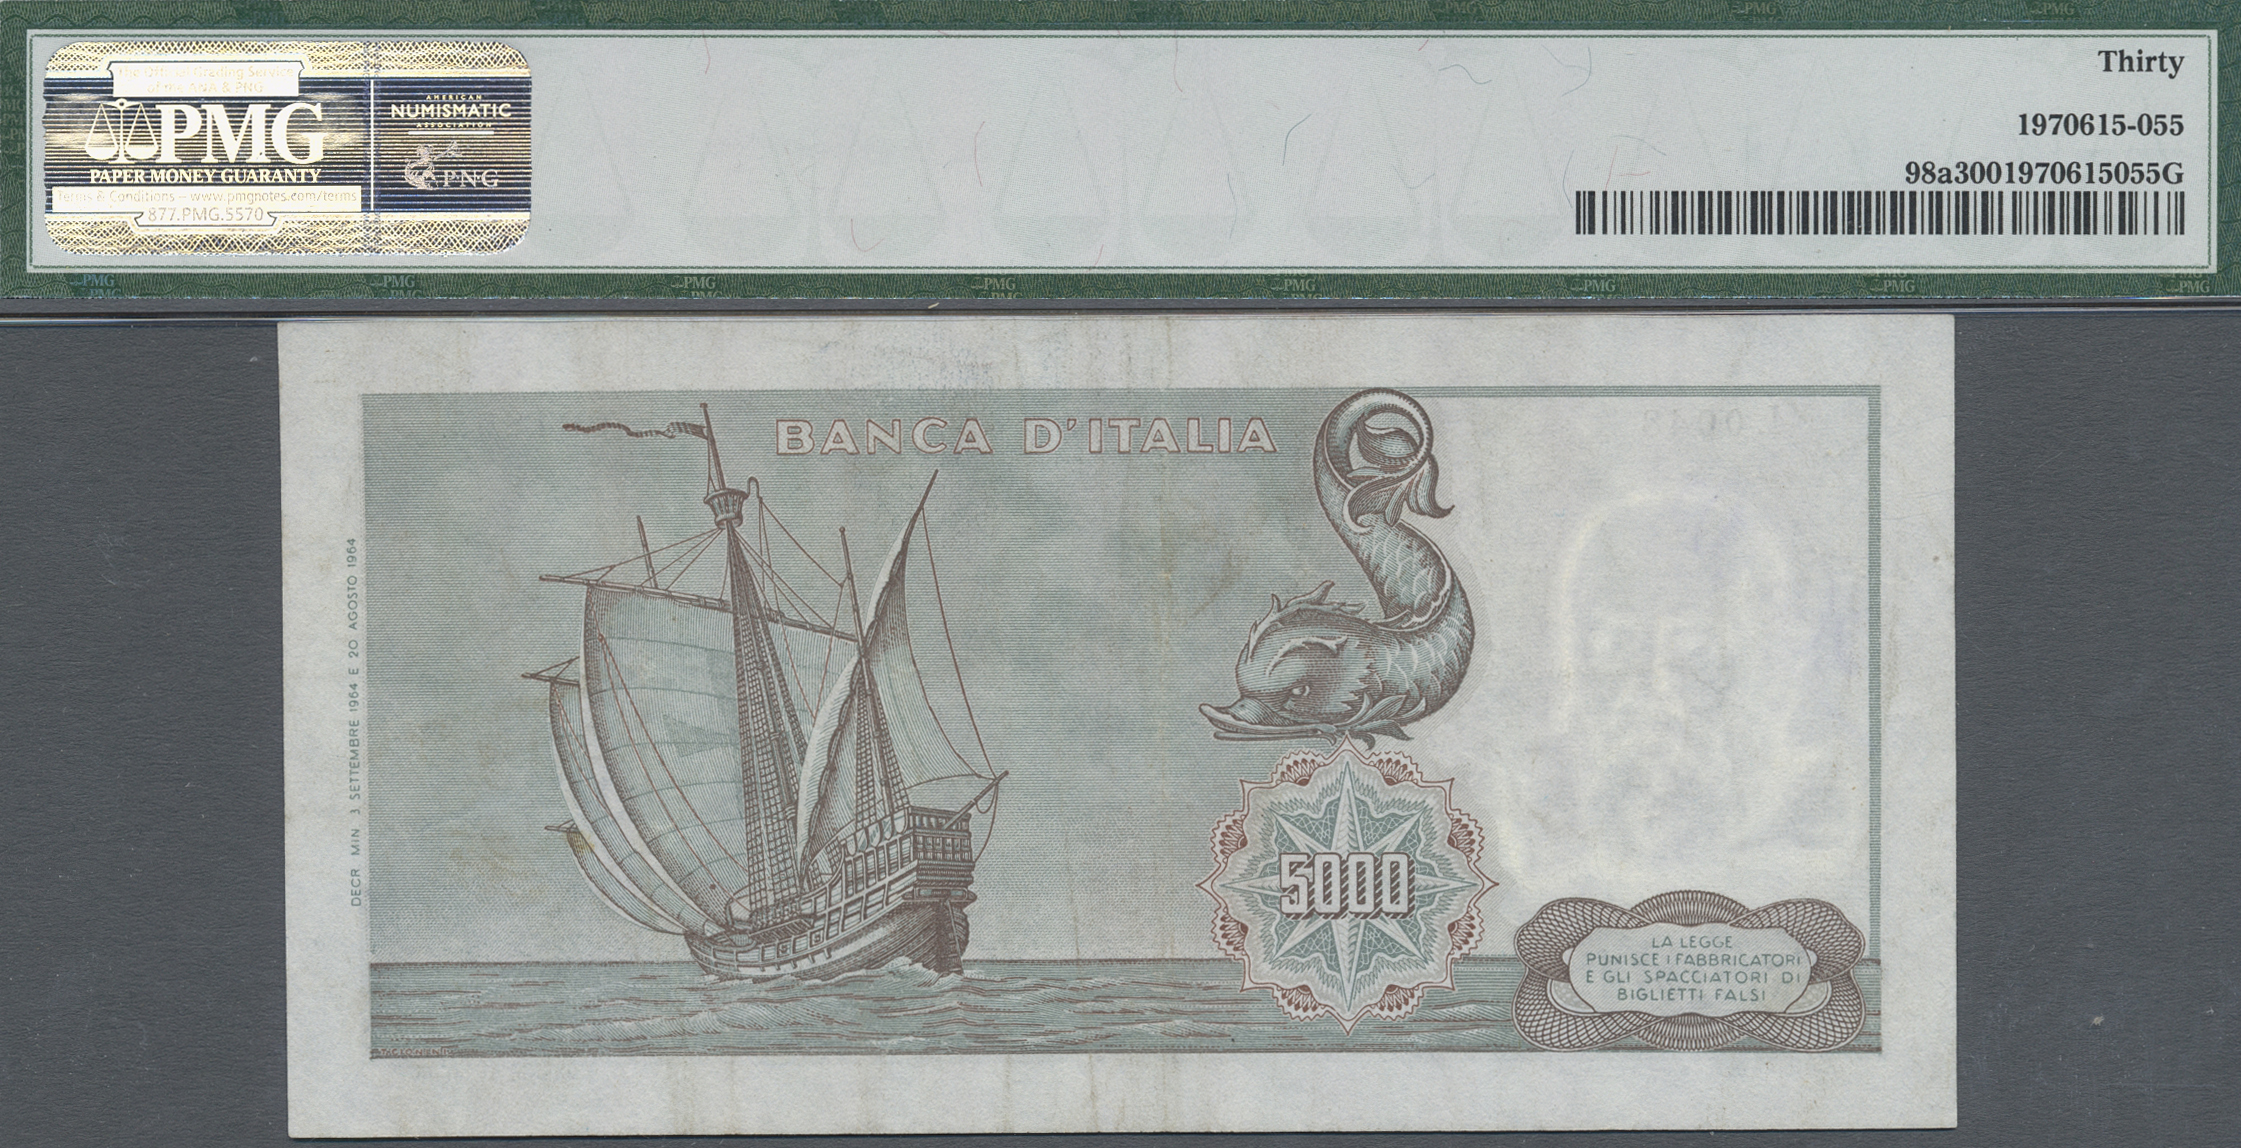 Lot 00460 - Italy / Italien | Banknoten  -  Auktionshaus Christoph Gärtner GmbH & Co. KG Sale #48 The Banknotes